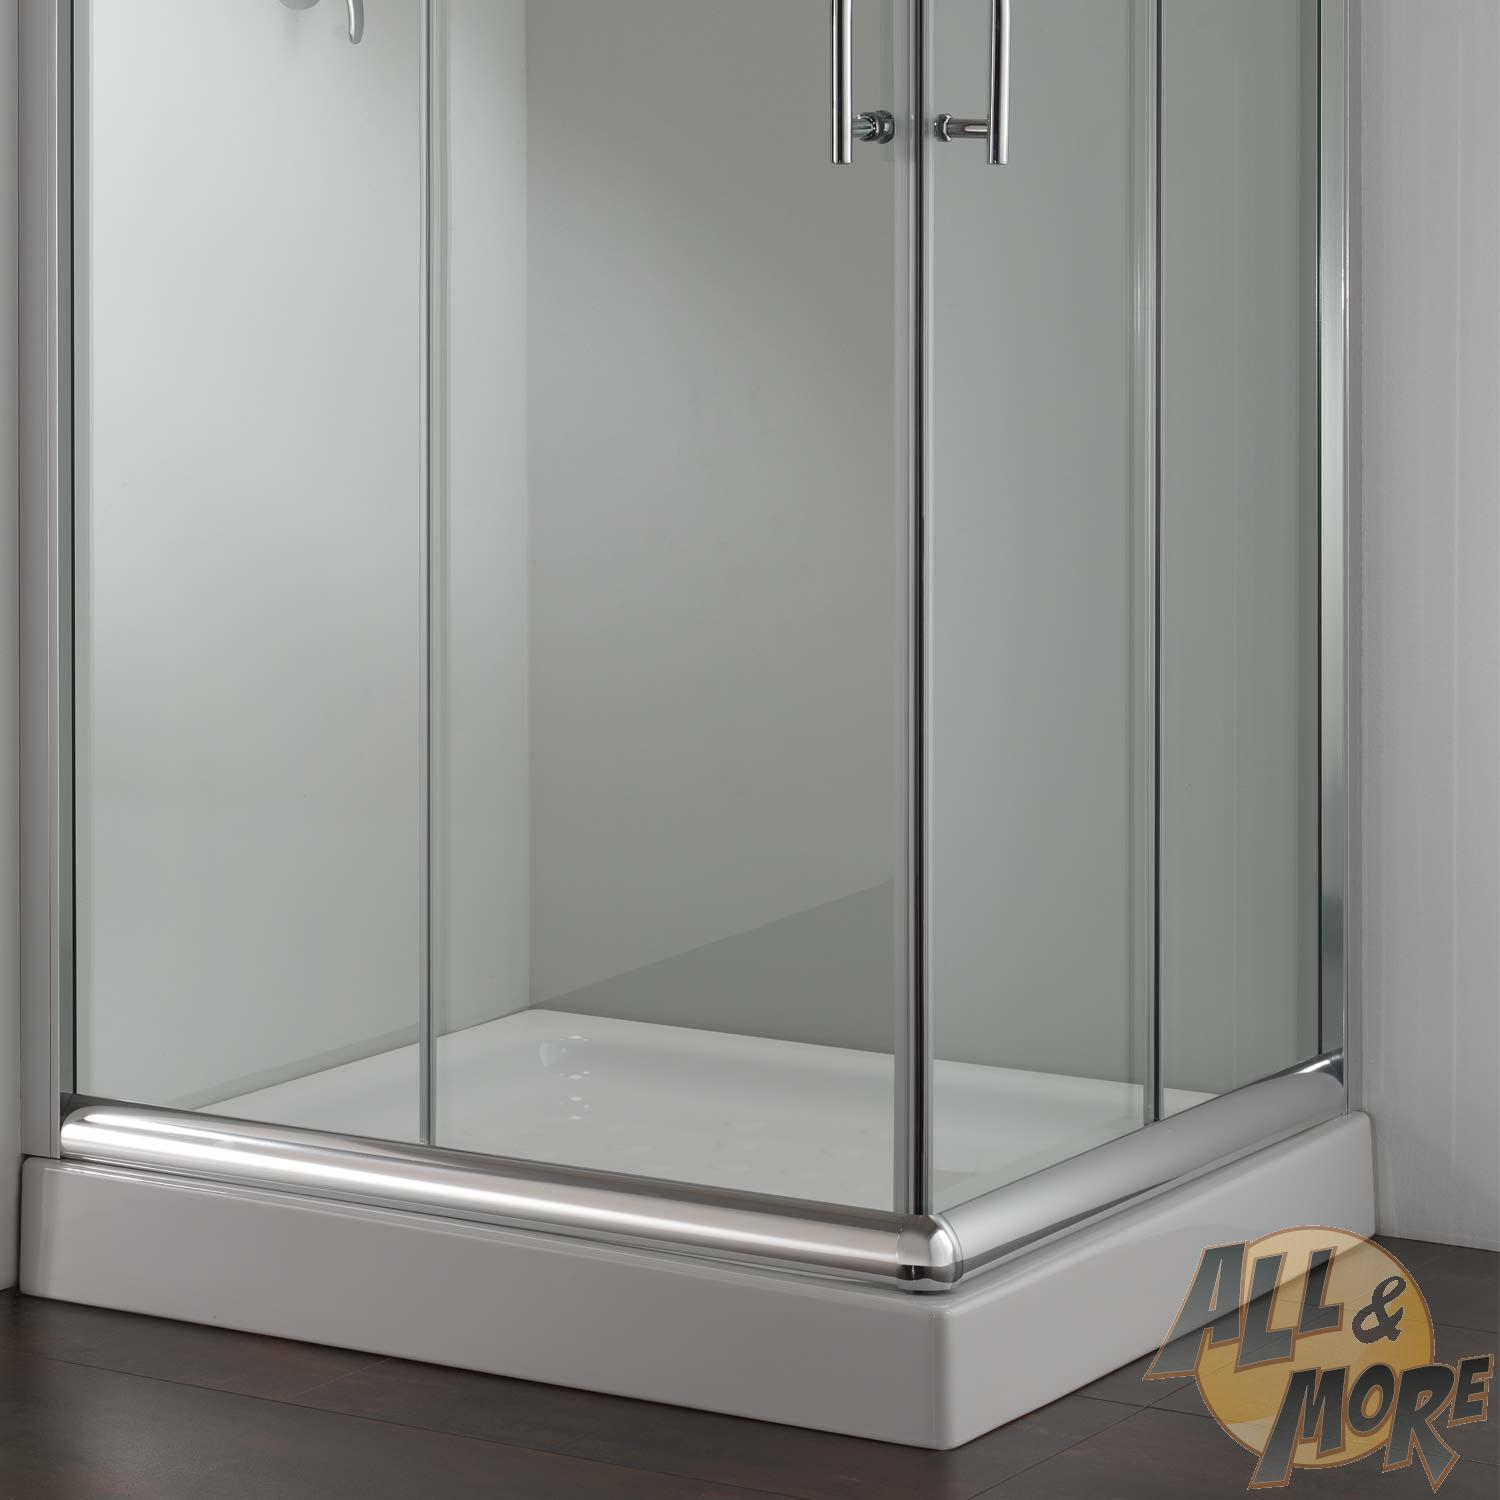 cabine de douche paroi douche 70x70 h185 cm verre transparent angulaire alabama ebay. Black Bedroom Furniture Sets. Home Design Ideas